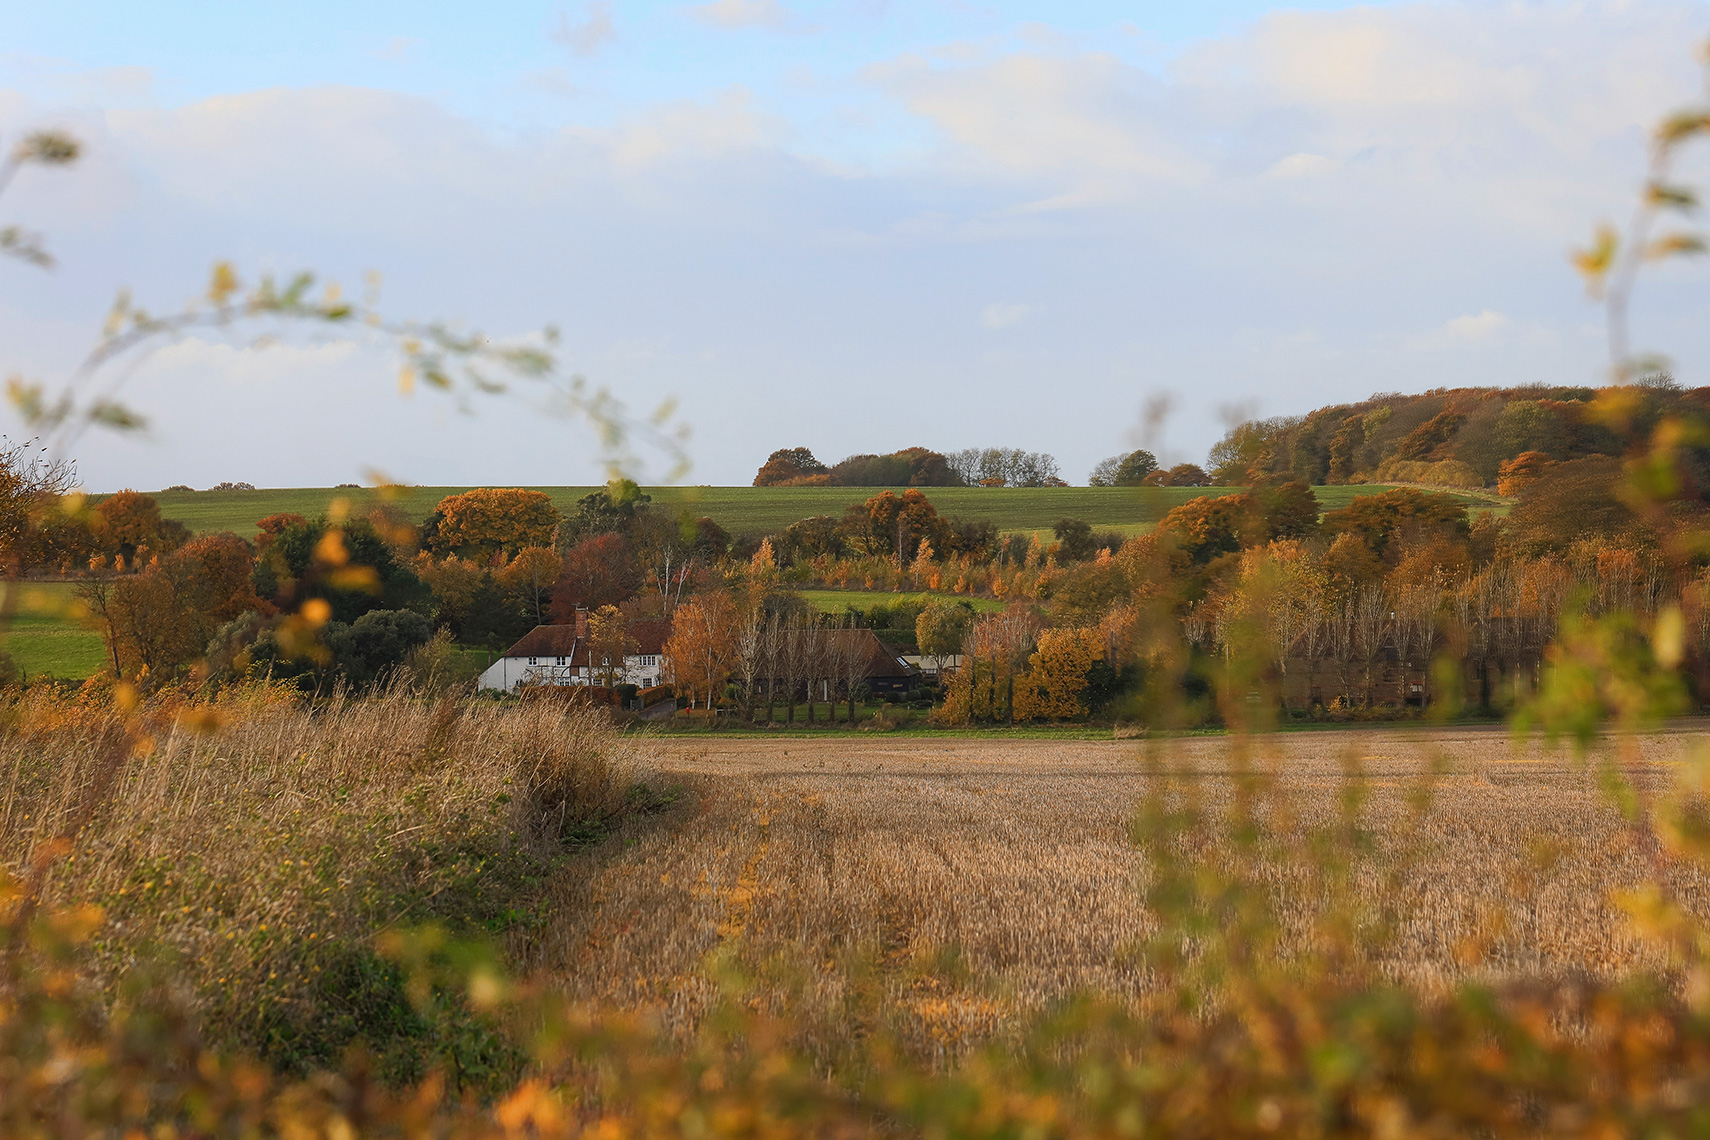 Autumn Landscape with orange and brown foliage in Adisham Kent, UK